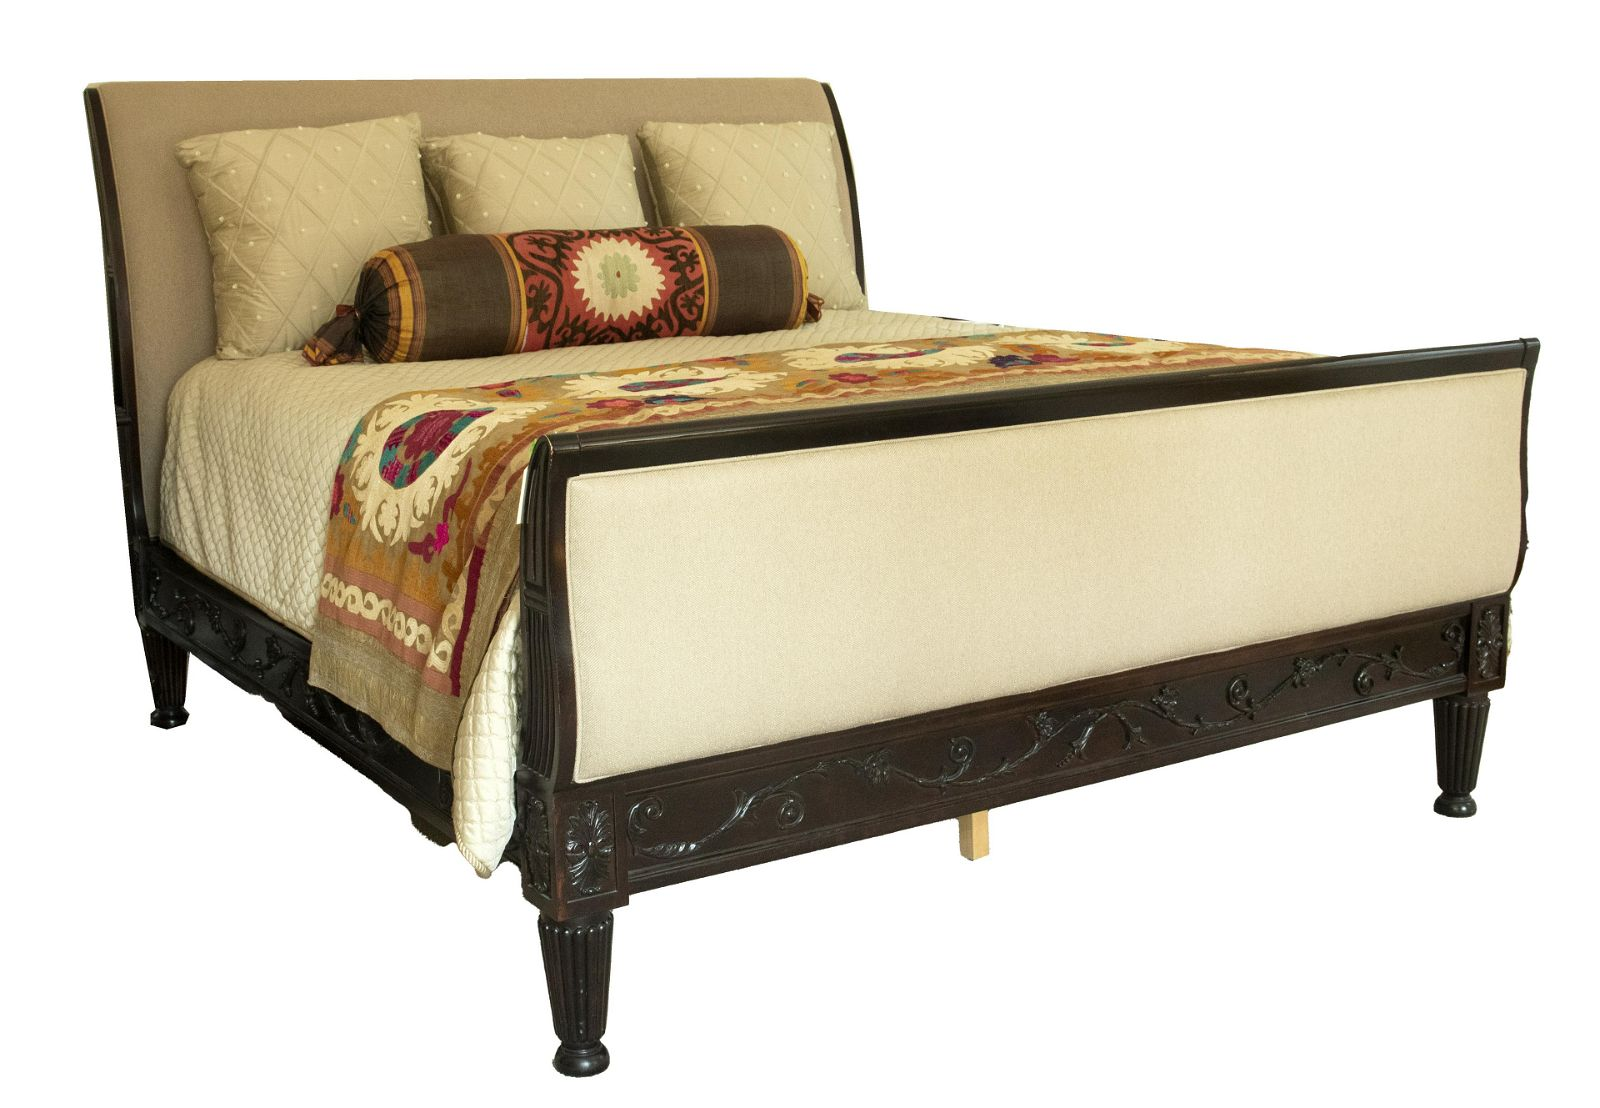 Carved Wood King Size Sleigh Bed Frame